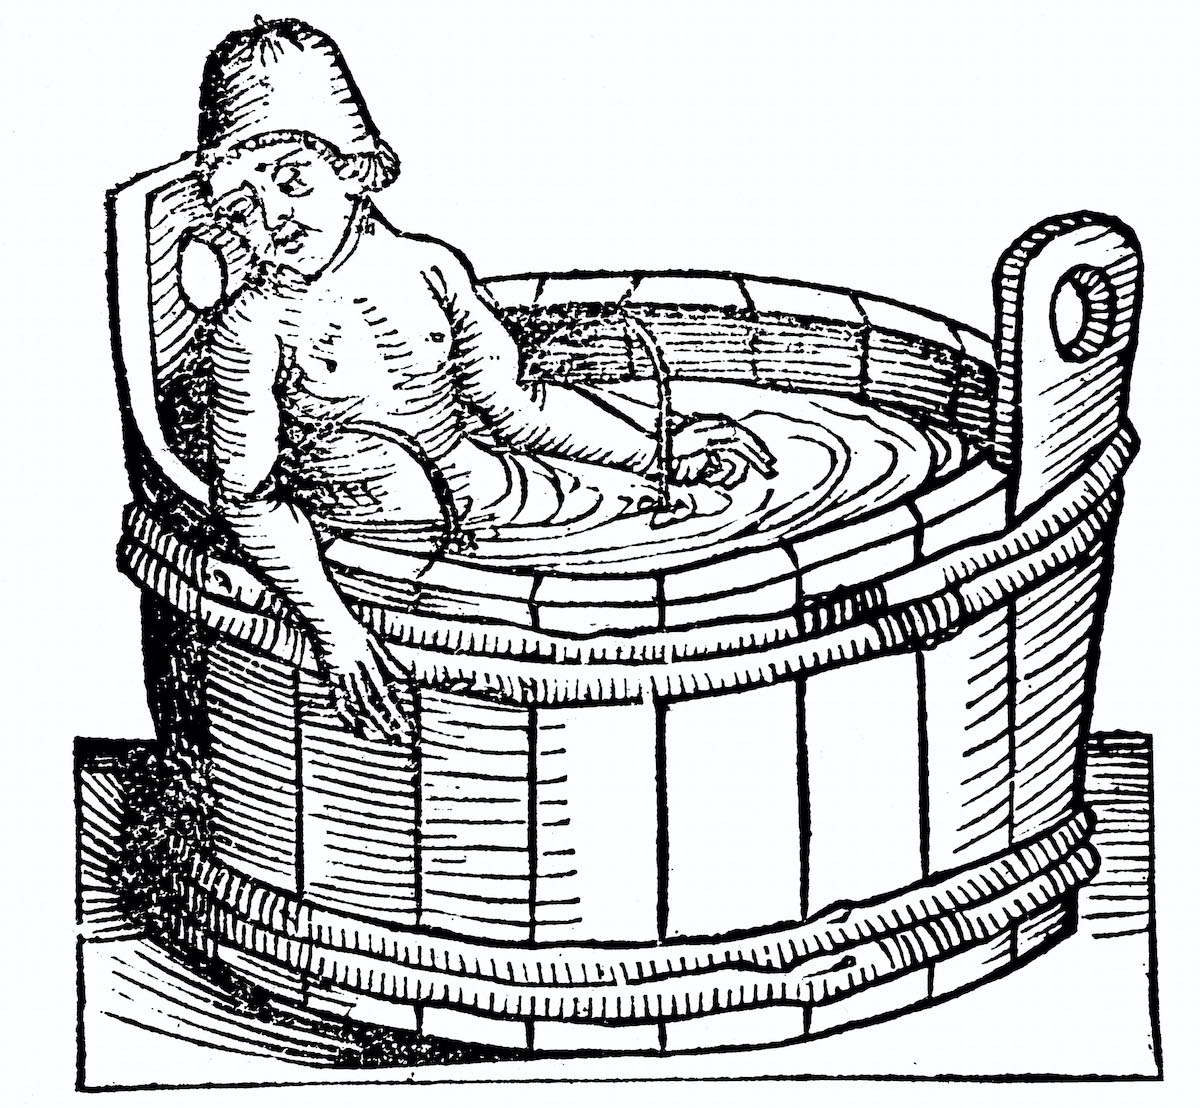 Lucius Annaeus Seneca (The Younger) c5 BC-65 AD. Roman Stoic philosopher, committing suicide in his bath, having antagonised Nero. Photo AFP / rom Hartmann Schedel 'Liber chronicarum mundi' (Nuremberg Chronicle), 1493 woodcut, Nuremberg